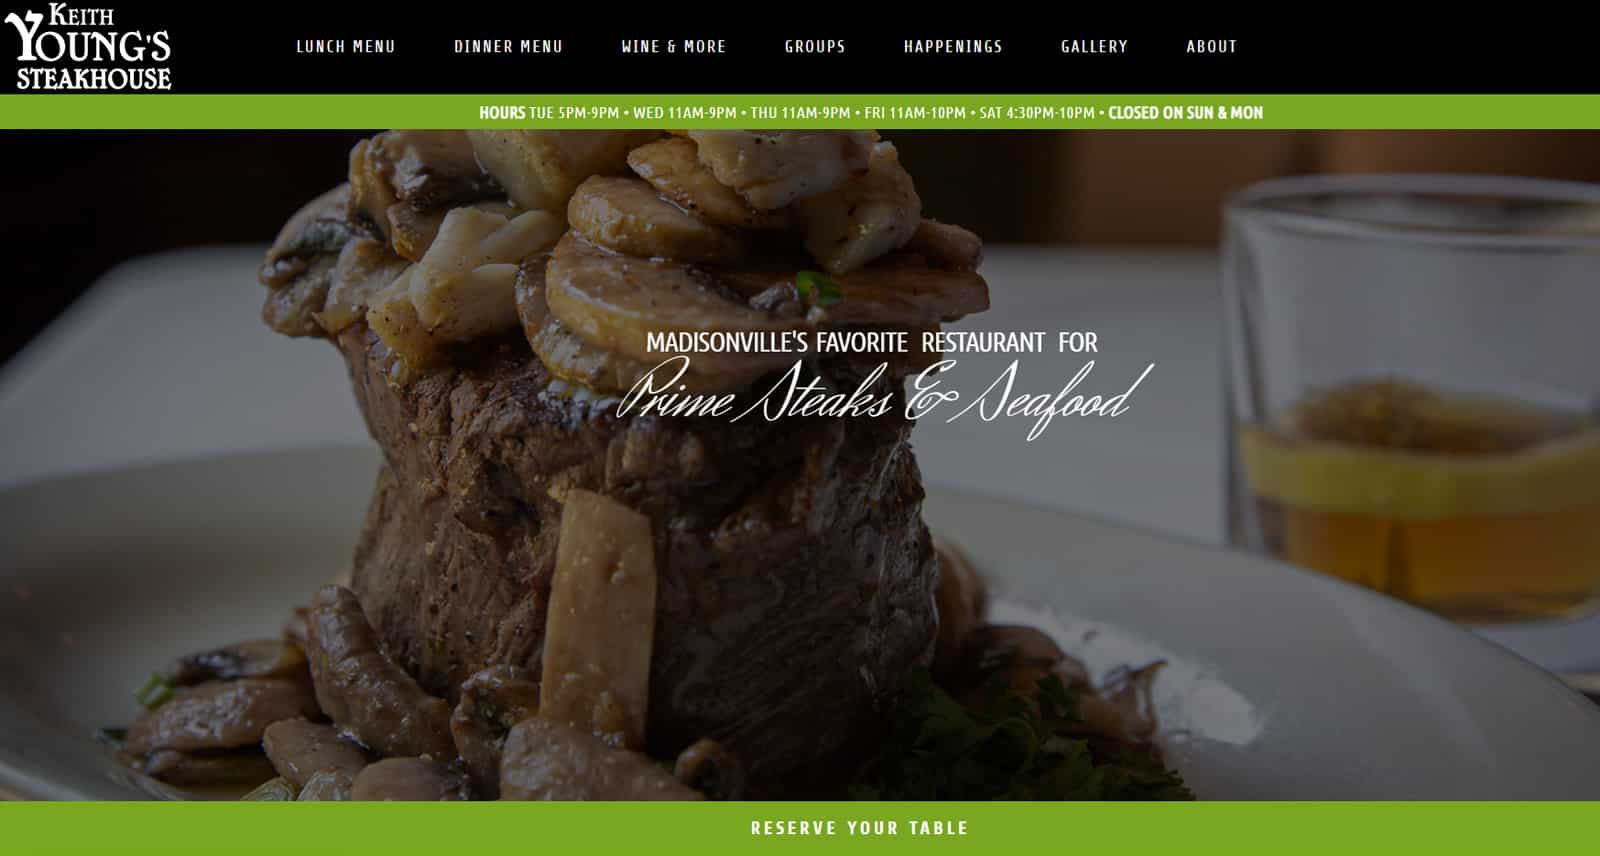 Keith Young's Steakhouse Website After